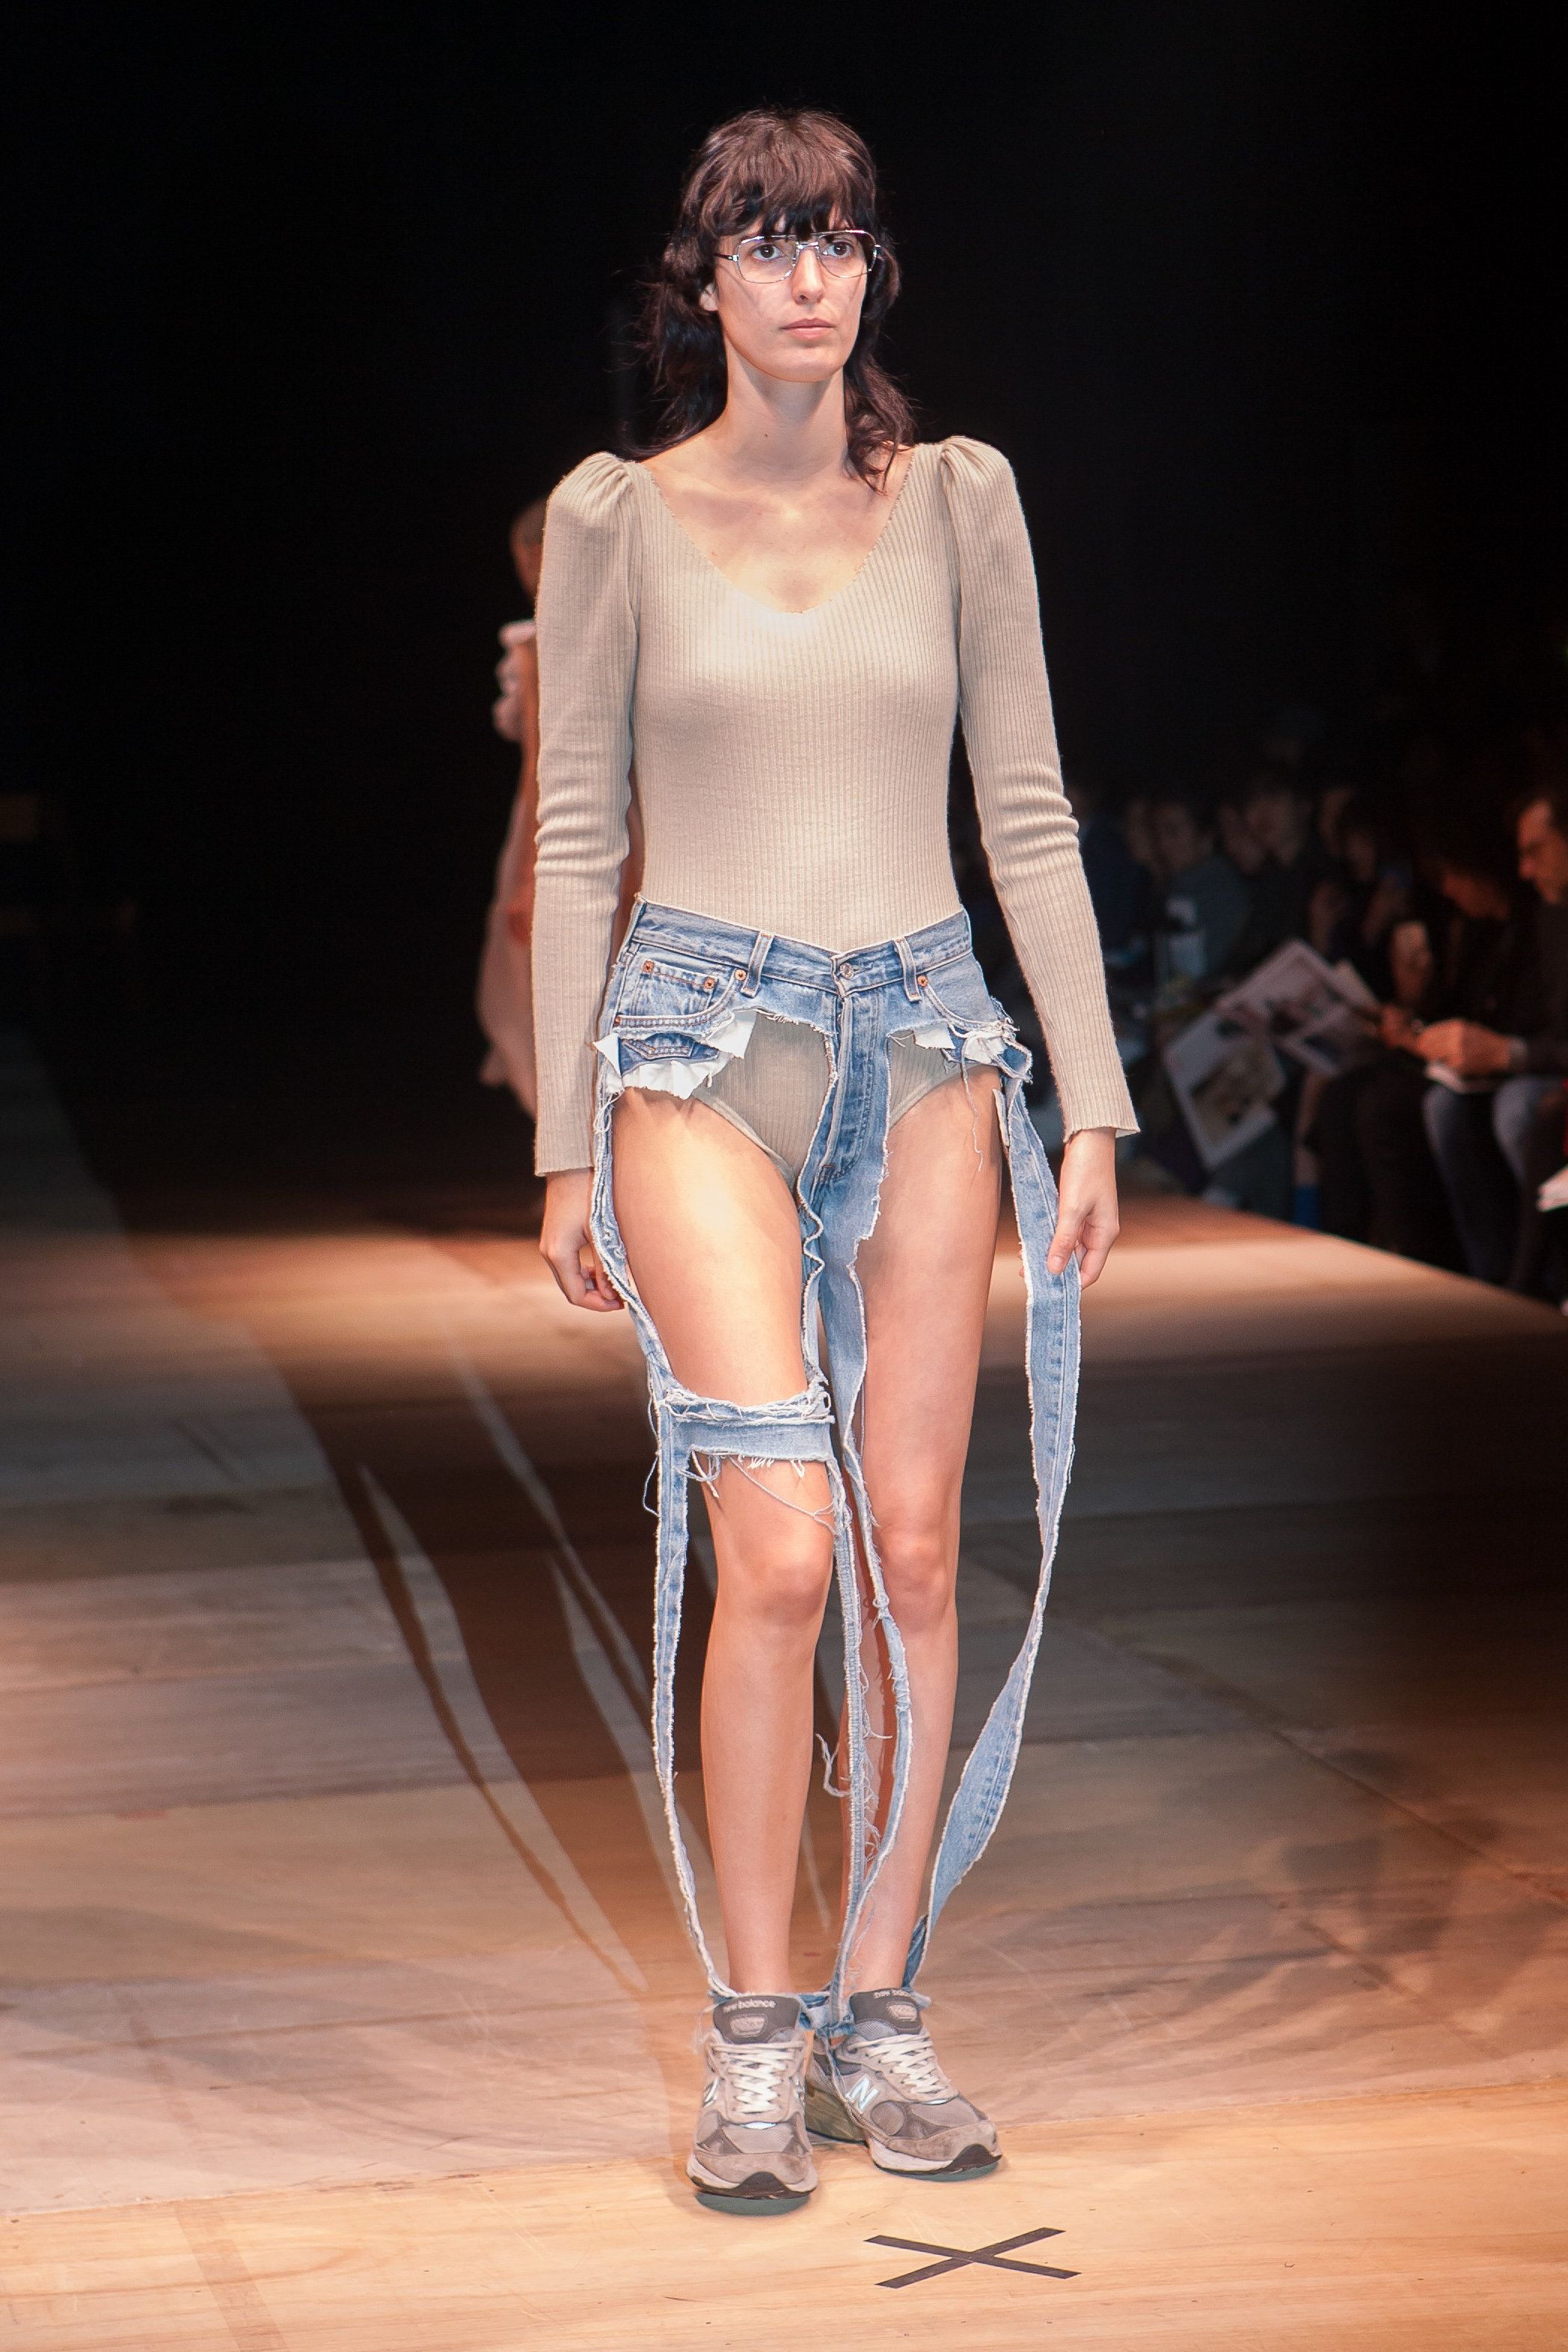 These High-Fashion 'Thong Jeans' Leave Little To The Imagination